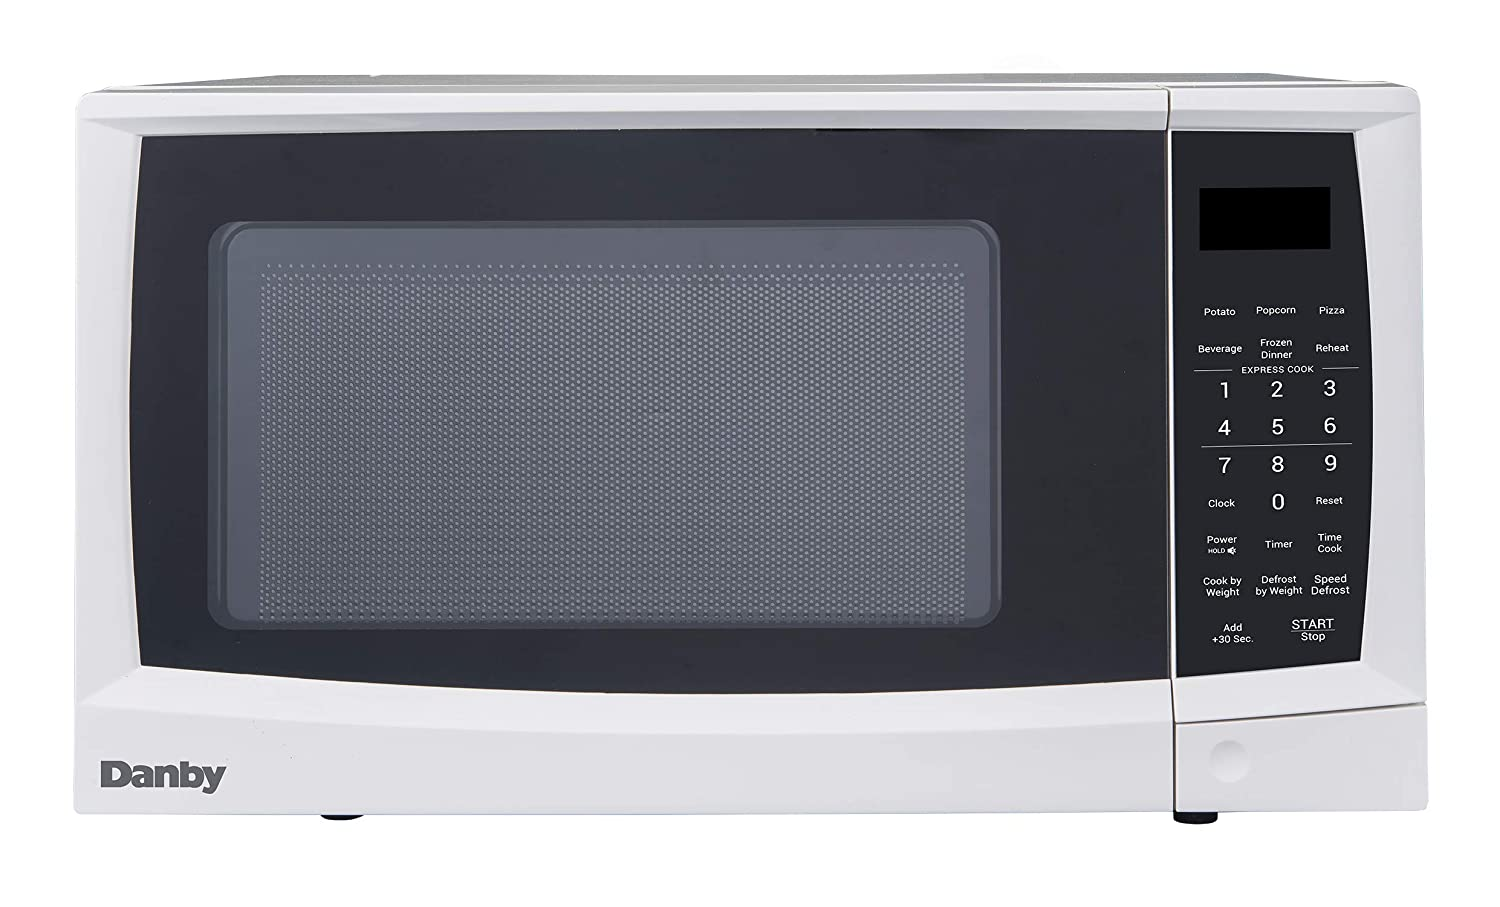 Frigidaire 0.7 Cu. Ft. 700W Countertop Microwave Oven White